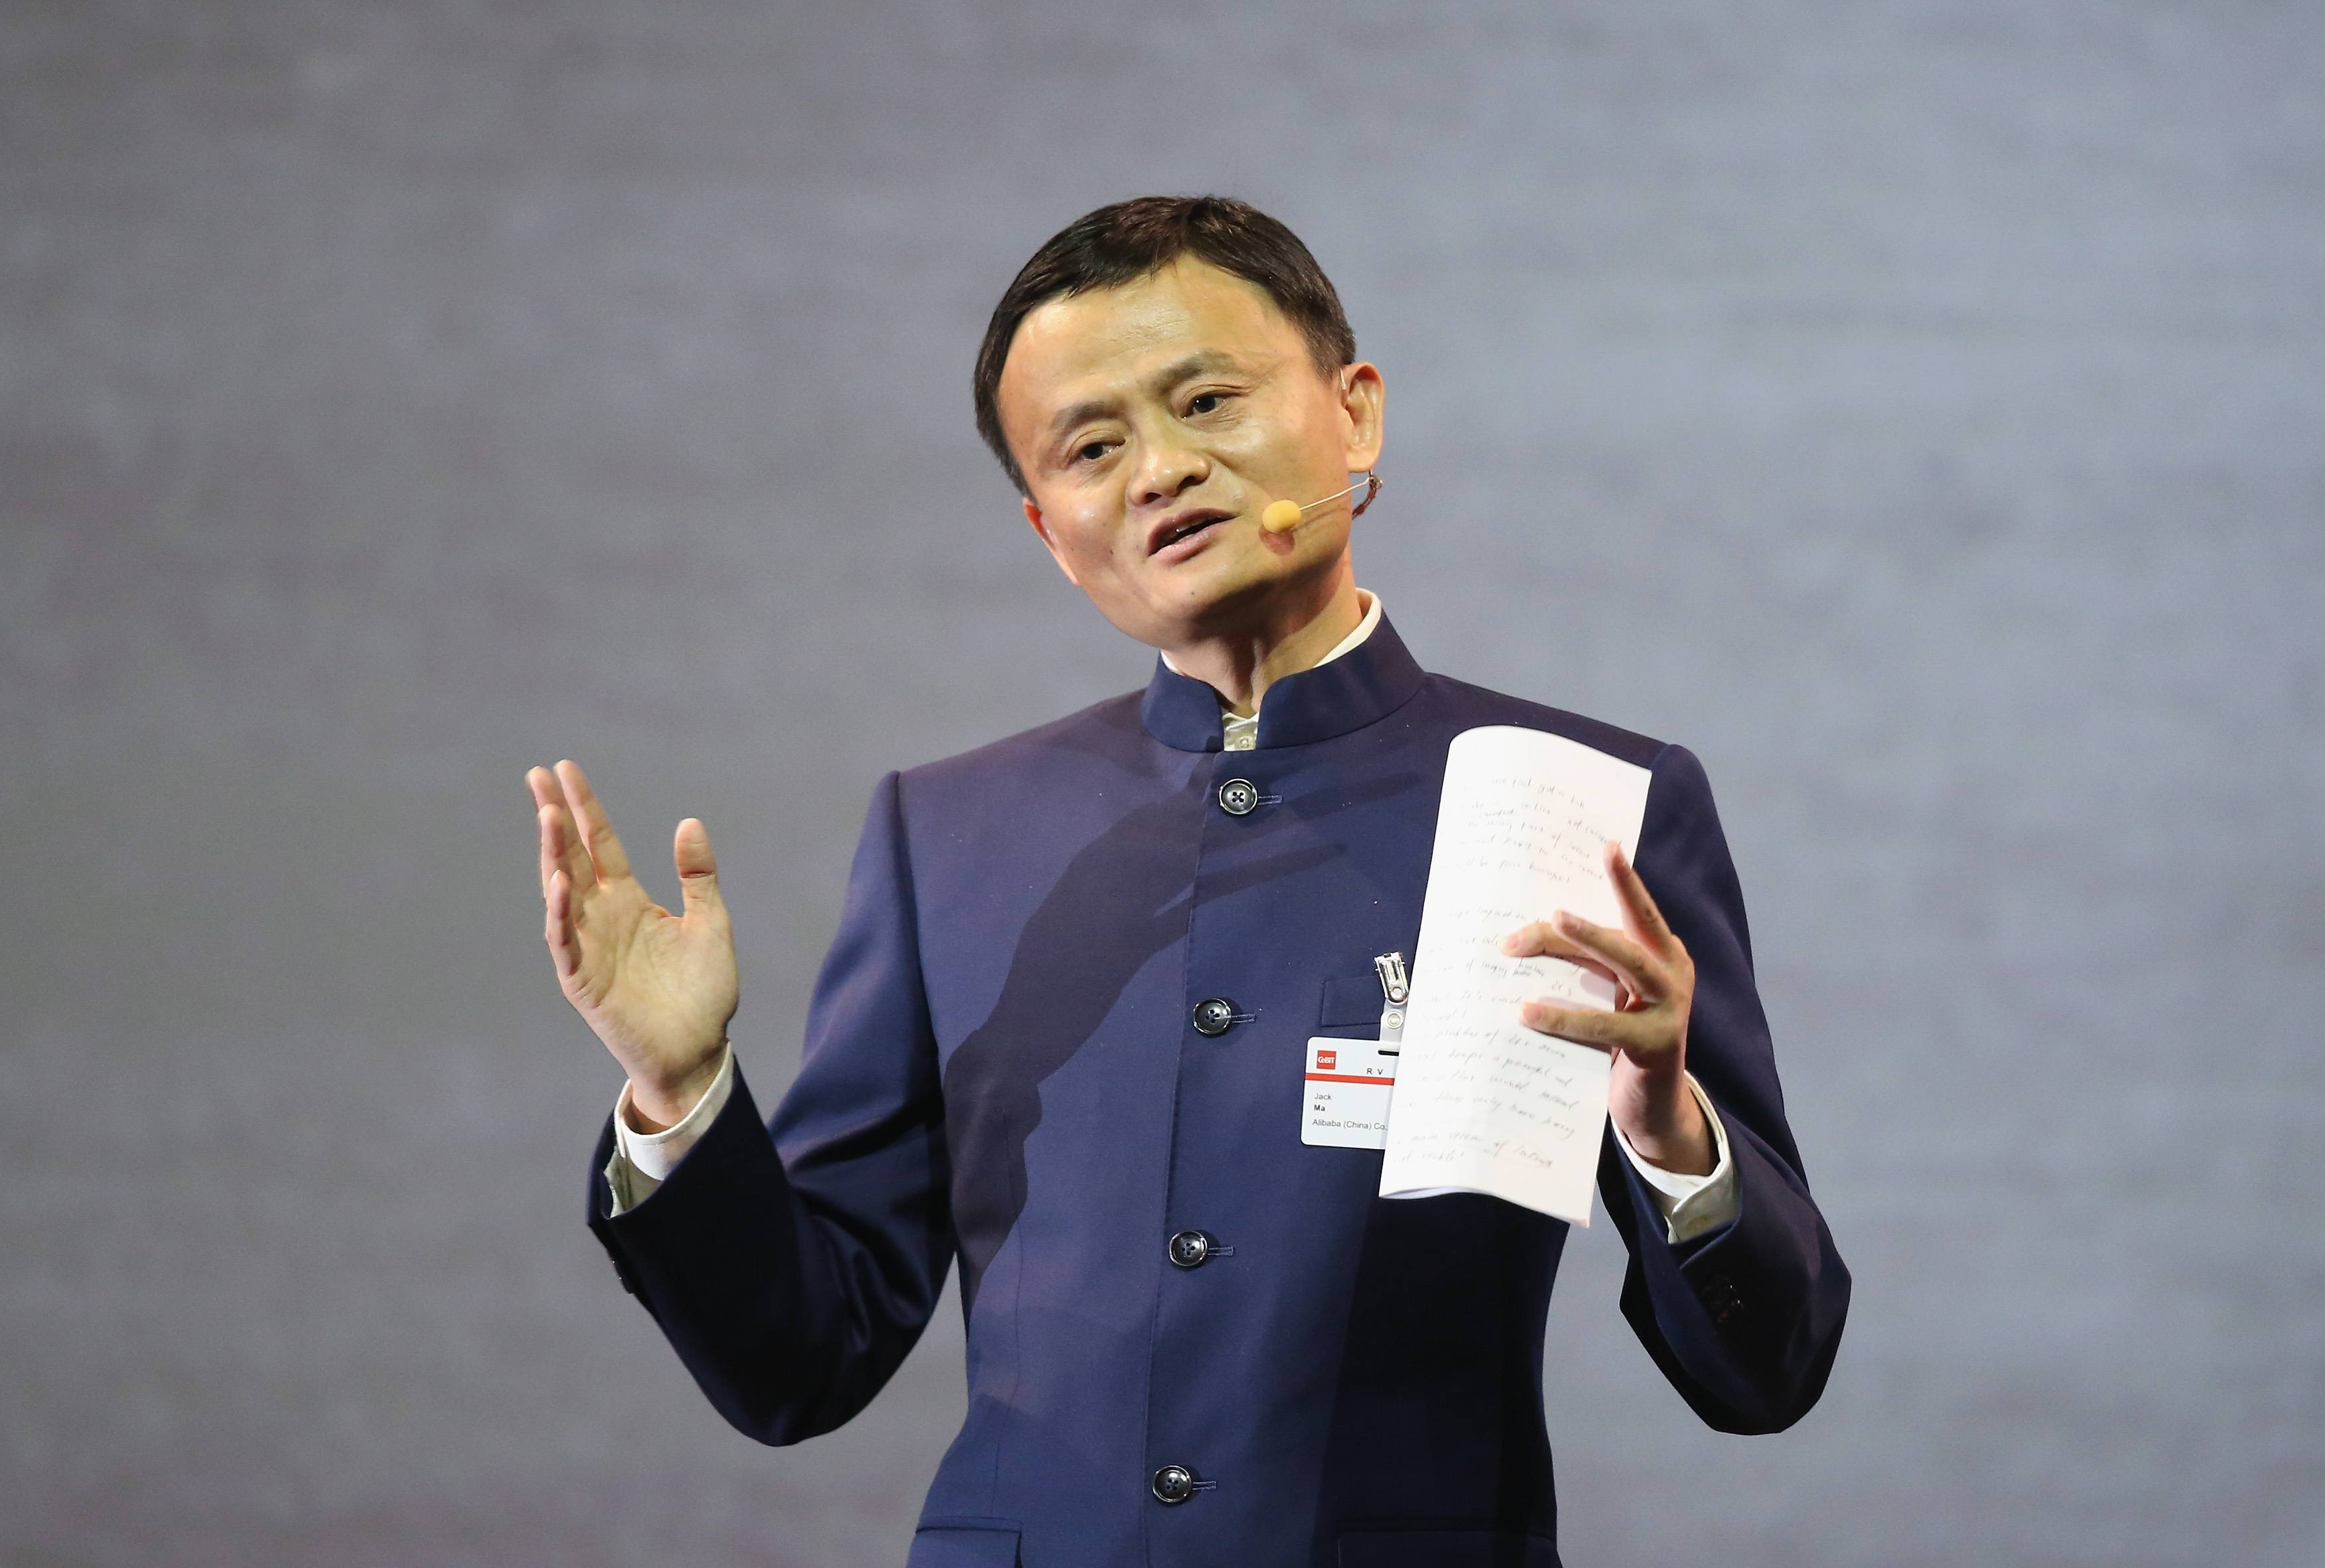 Jack Ma, founder and executive chairman of the Alibaba Group, speaks during a panel